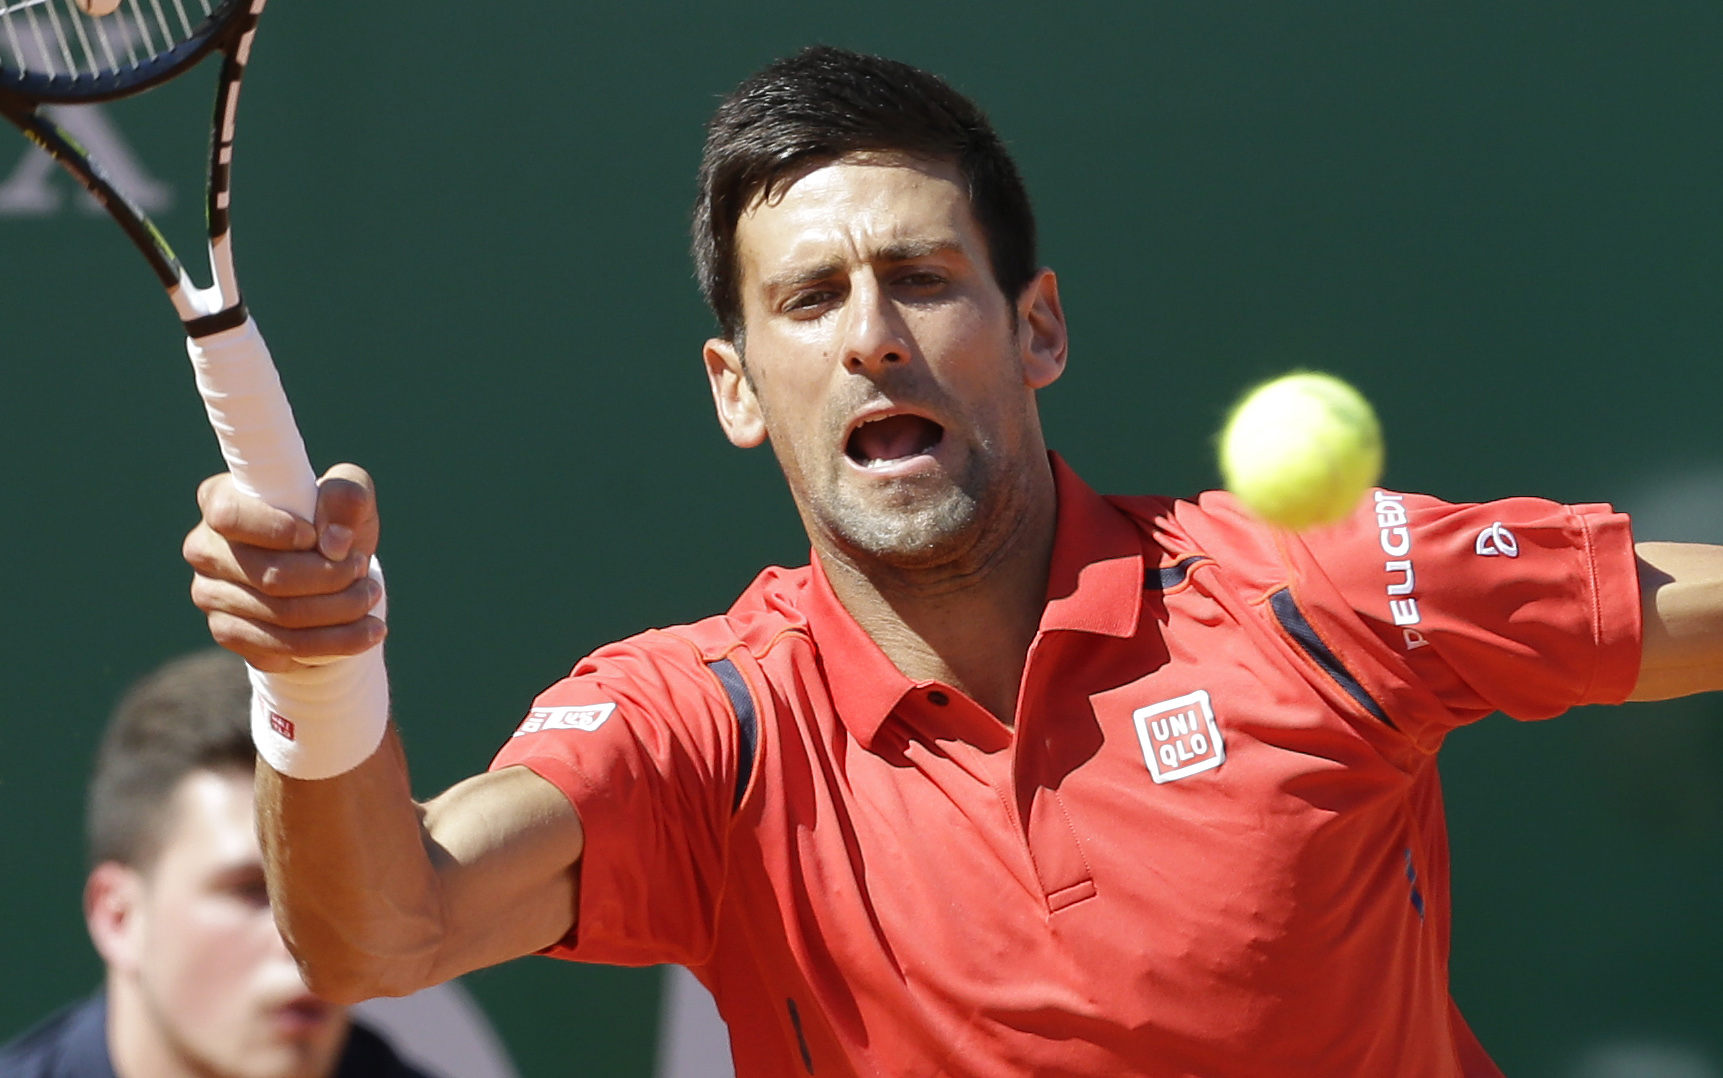 Novak Djokovic of Serbia plays a return to Jiri Vesely of Czech Republic during their match at the Monte Carlo Tennis Masters tournament in Monaco, Wednesday, April 13, 2016. (AP Photo/Lionel Cironneau)